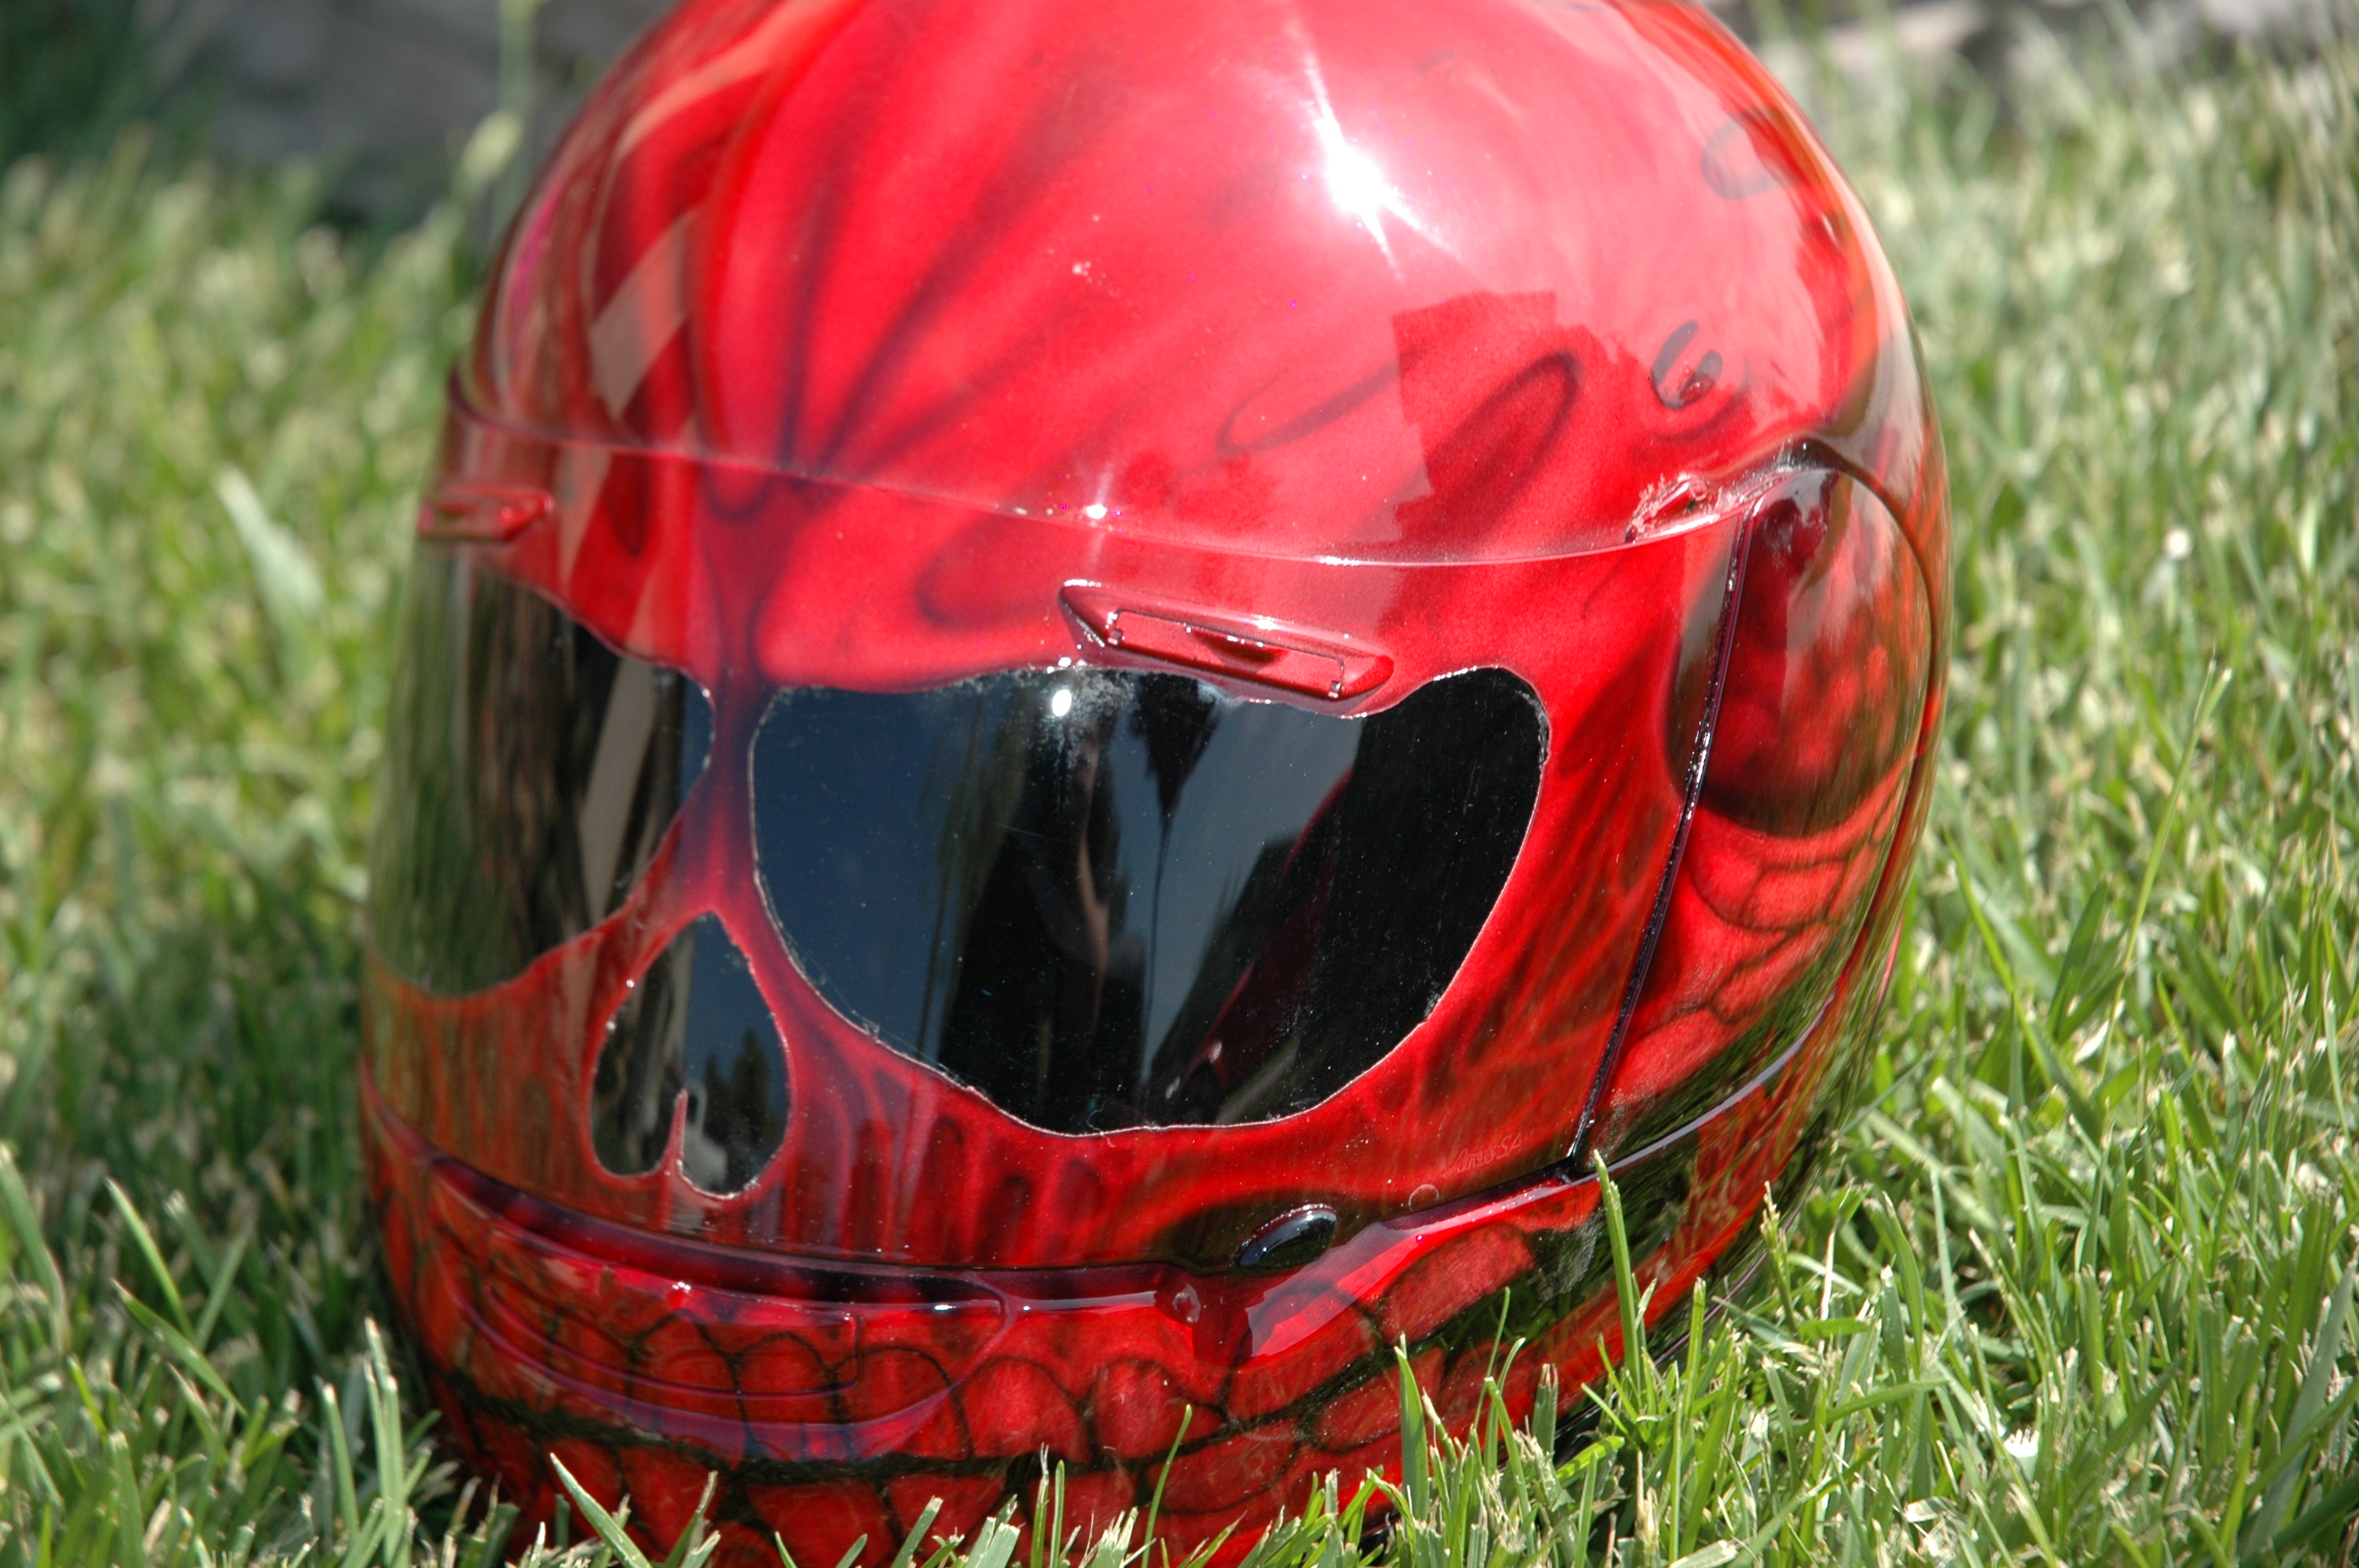 custom airbrush paint motorcycle helmets for sale by bad ass paint. Black Bedroom Furniture Sets. Home Design Ideas